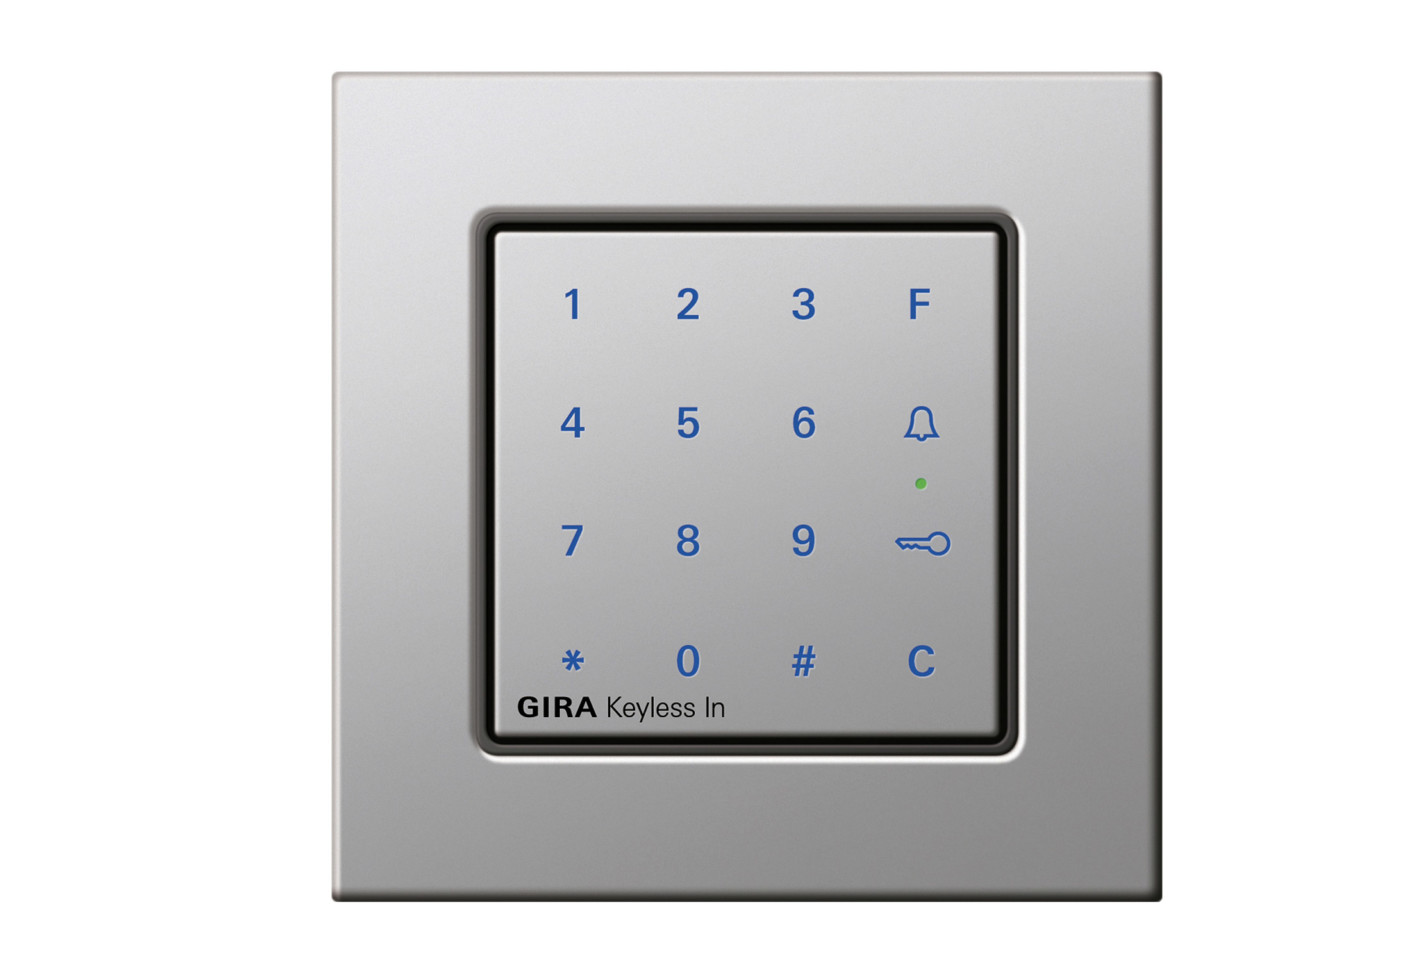 e22 keyless in keypad by gira stylepark. Black Bedroom Furniture Sets. Home Design Ideas